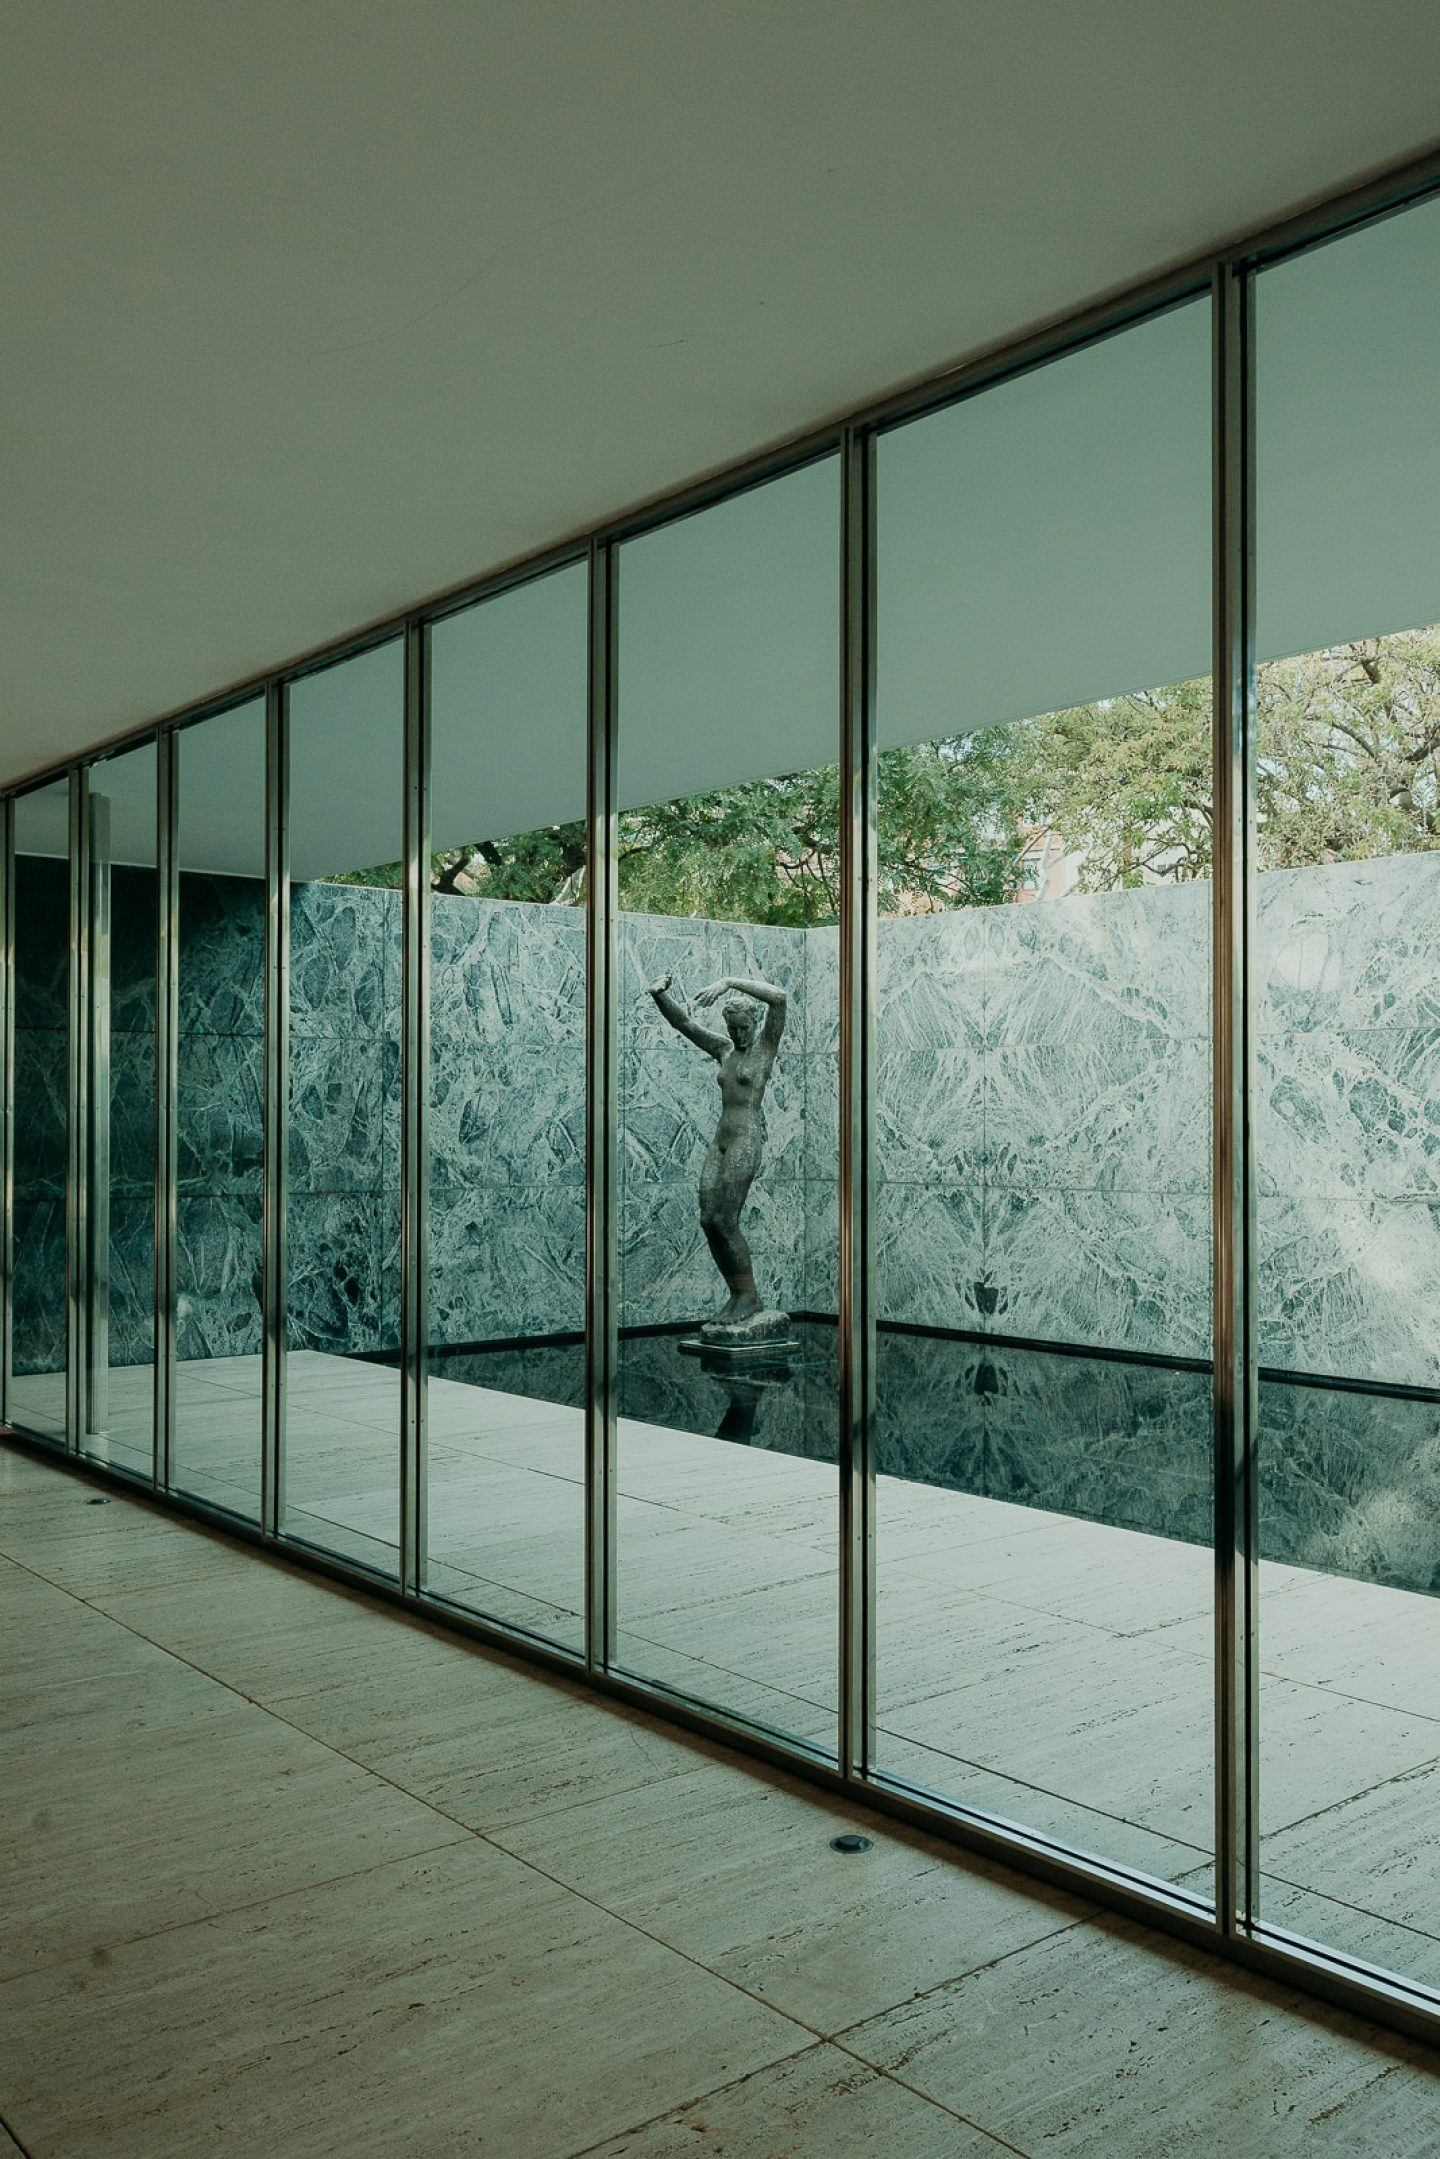 IGNANT-Architecture-Barcelona-Pavilion-Ludwig-Mies-Van-Der-Rohe-Maciej-Jezyk-09